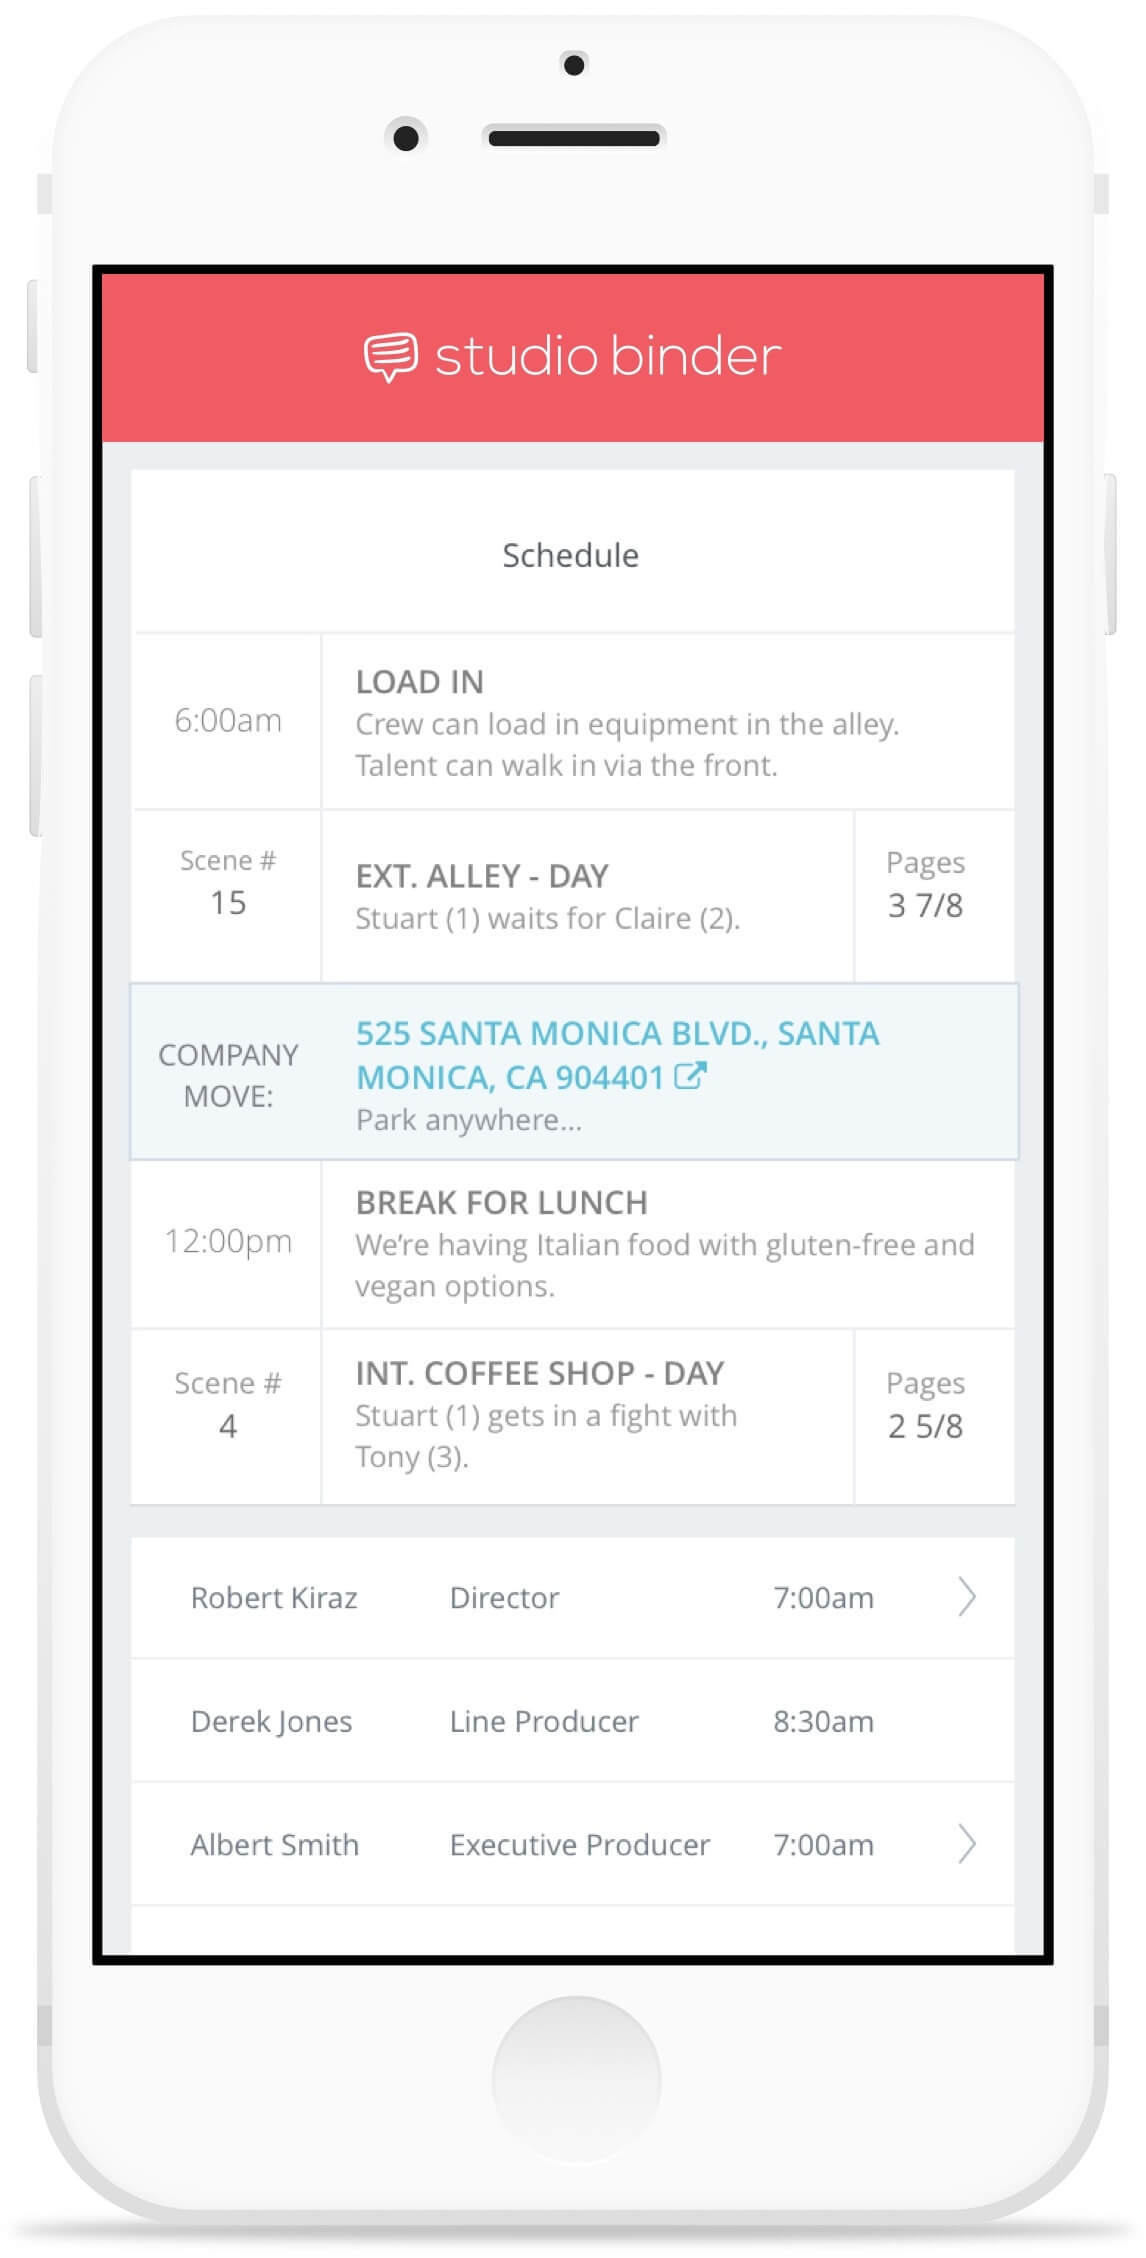 studiobinder-call-sheet-mobile-schedule-iphone-branded